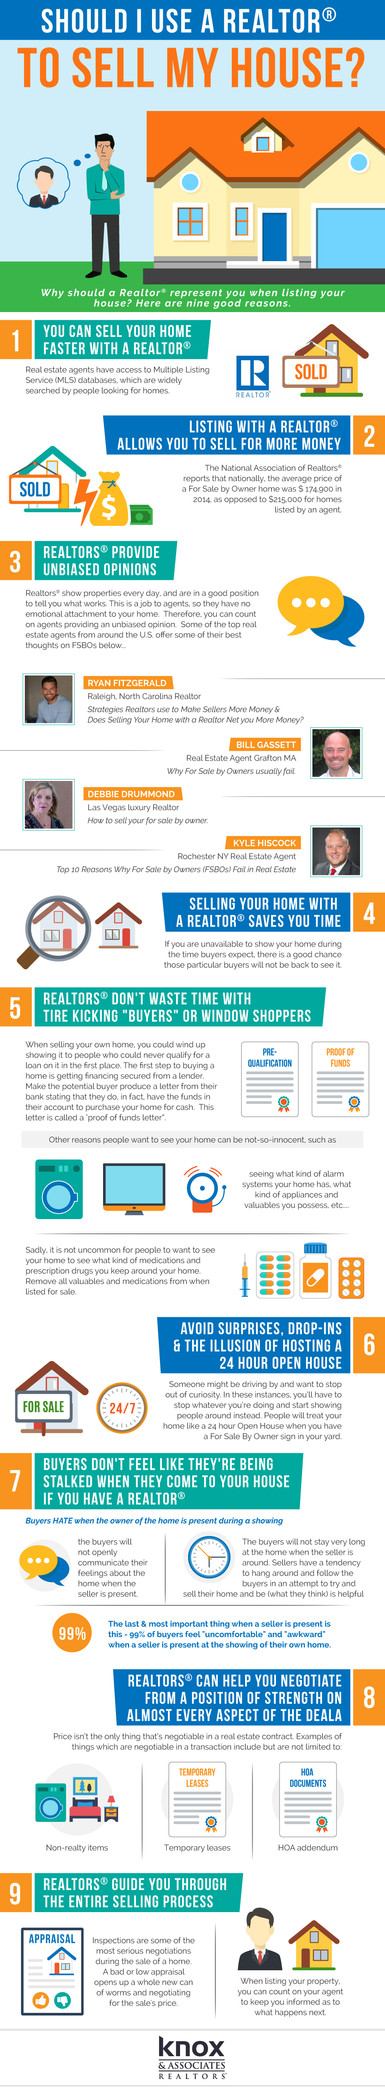 Should I Use a Realtor® To Sell My House